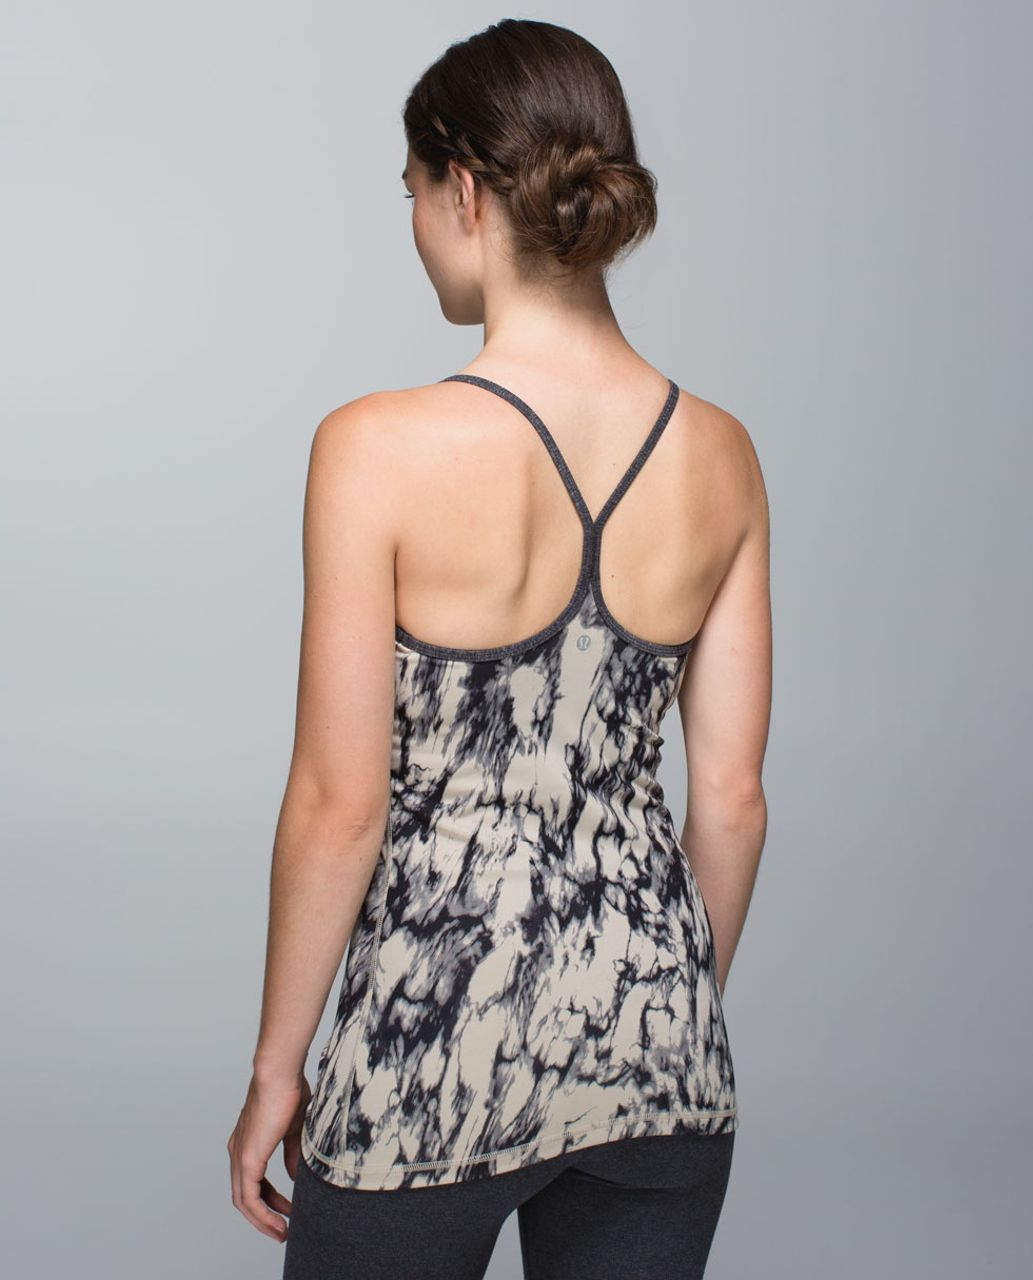 Lululemon Power Y Tank *Luon - Great Granite Black Mojave Tan / Heathered Black